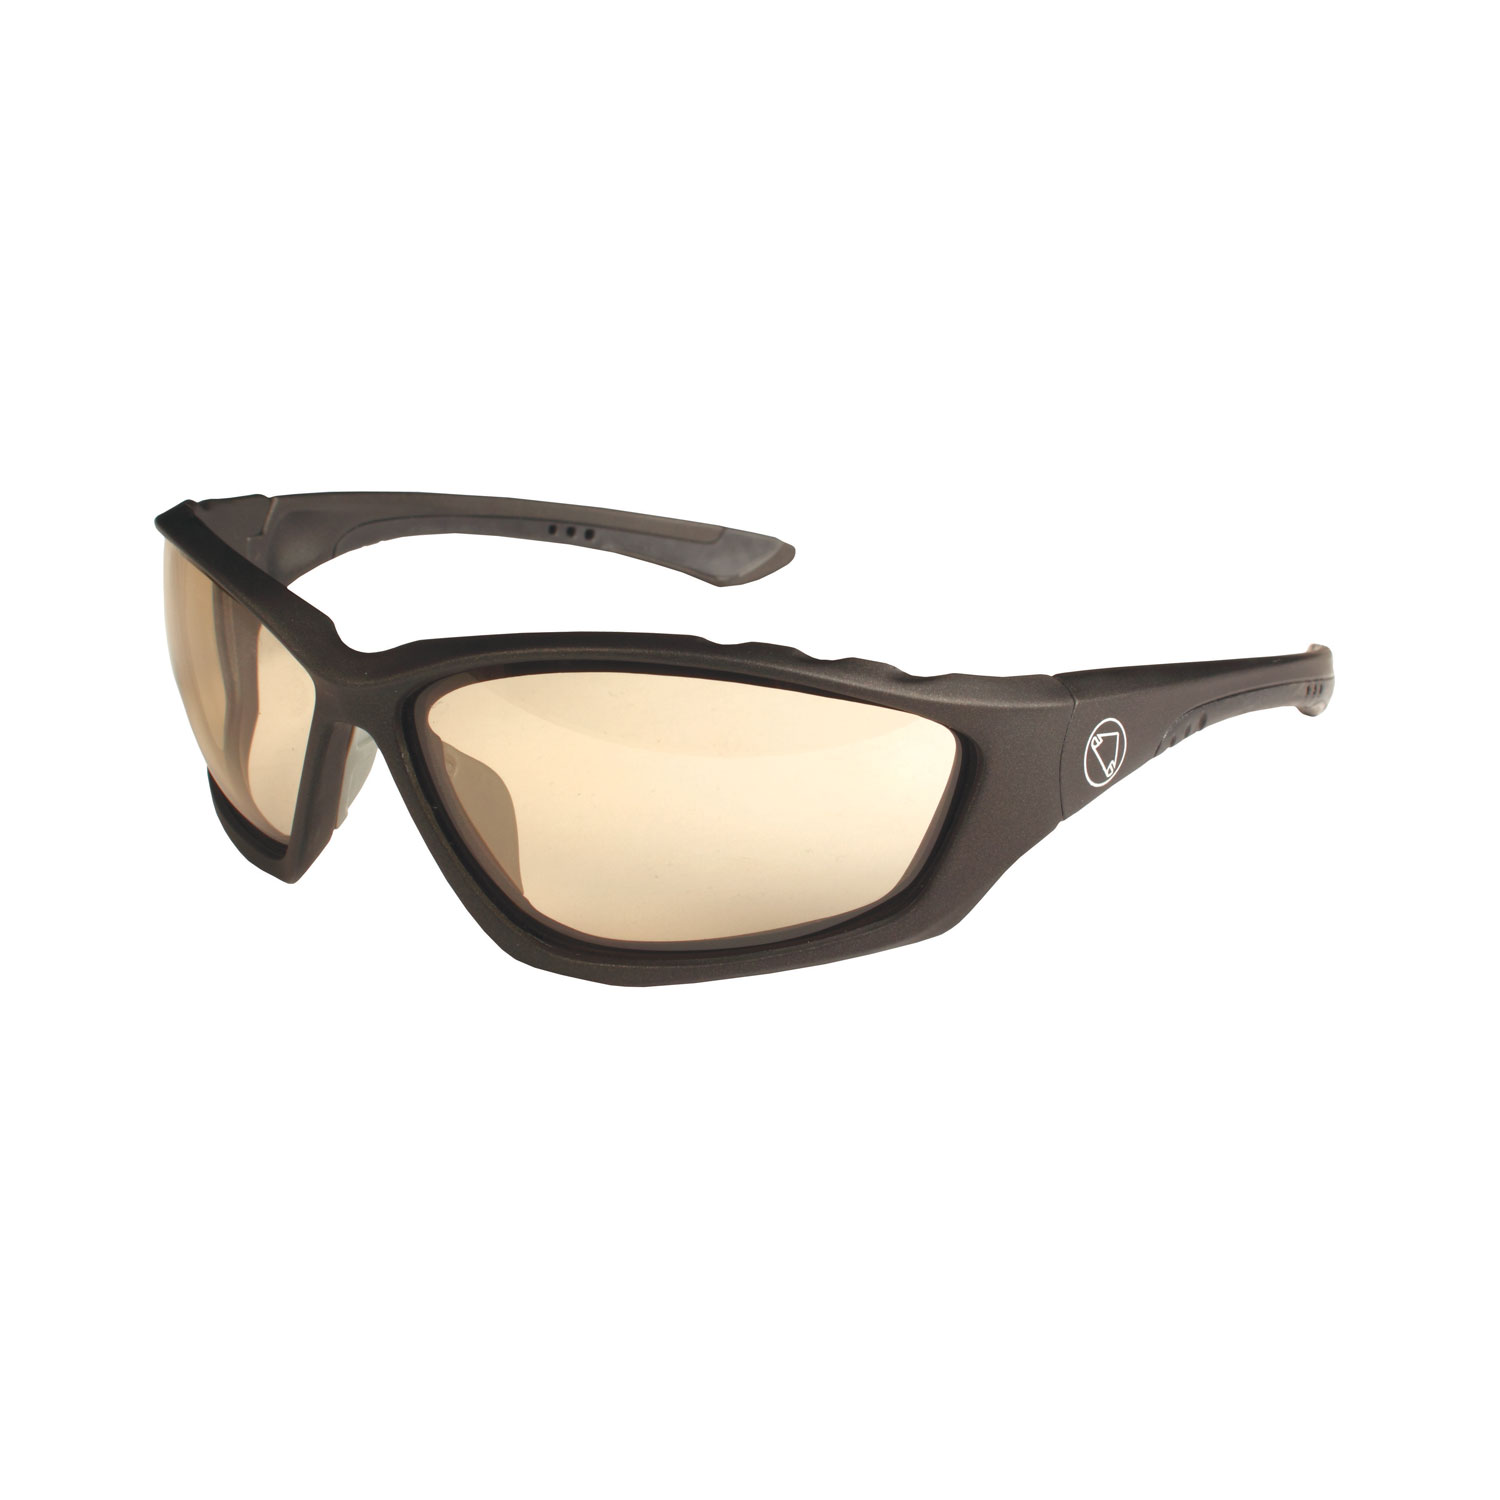 Snoek Glasses Matt Gun Metal